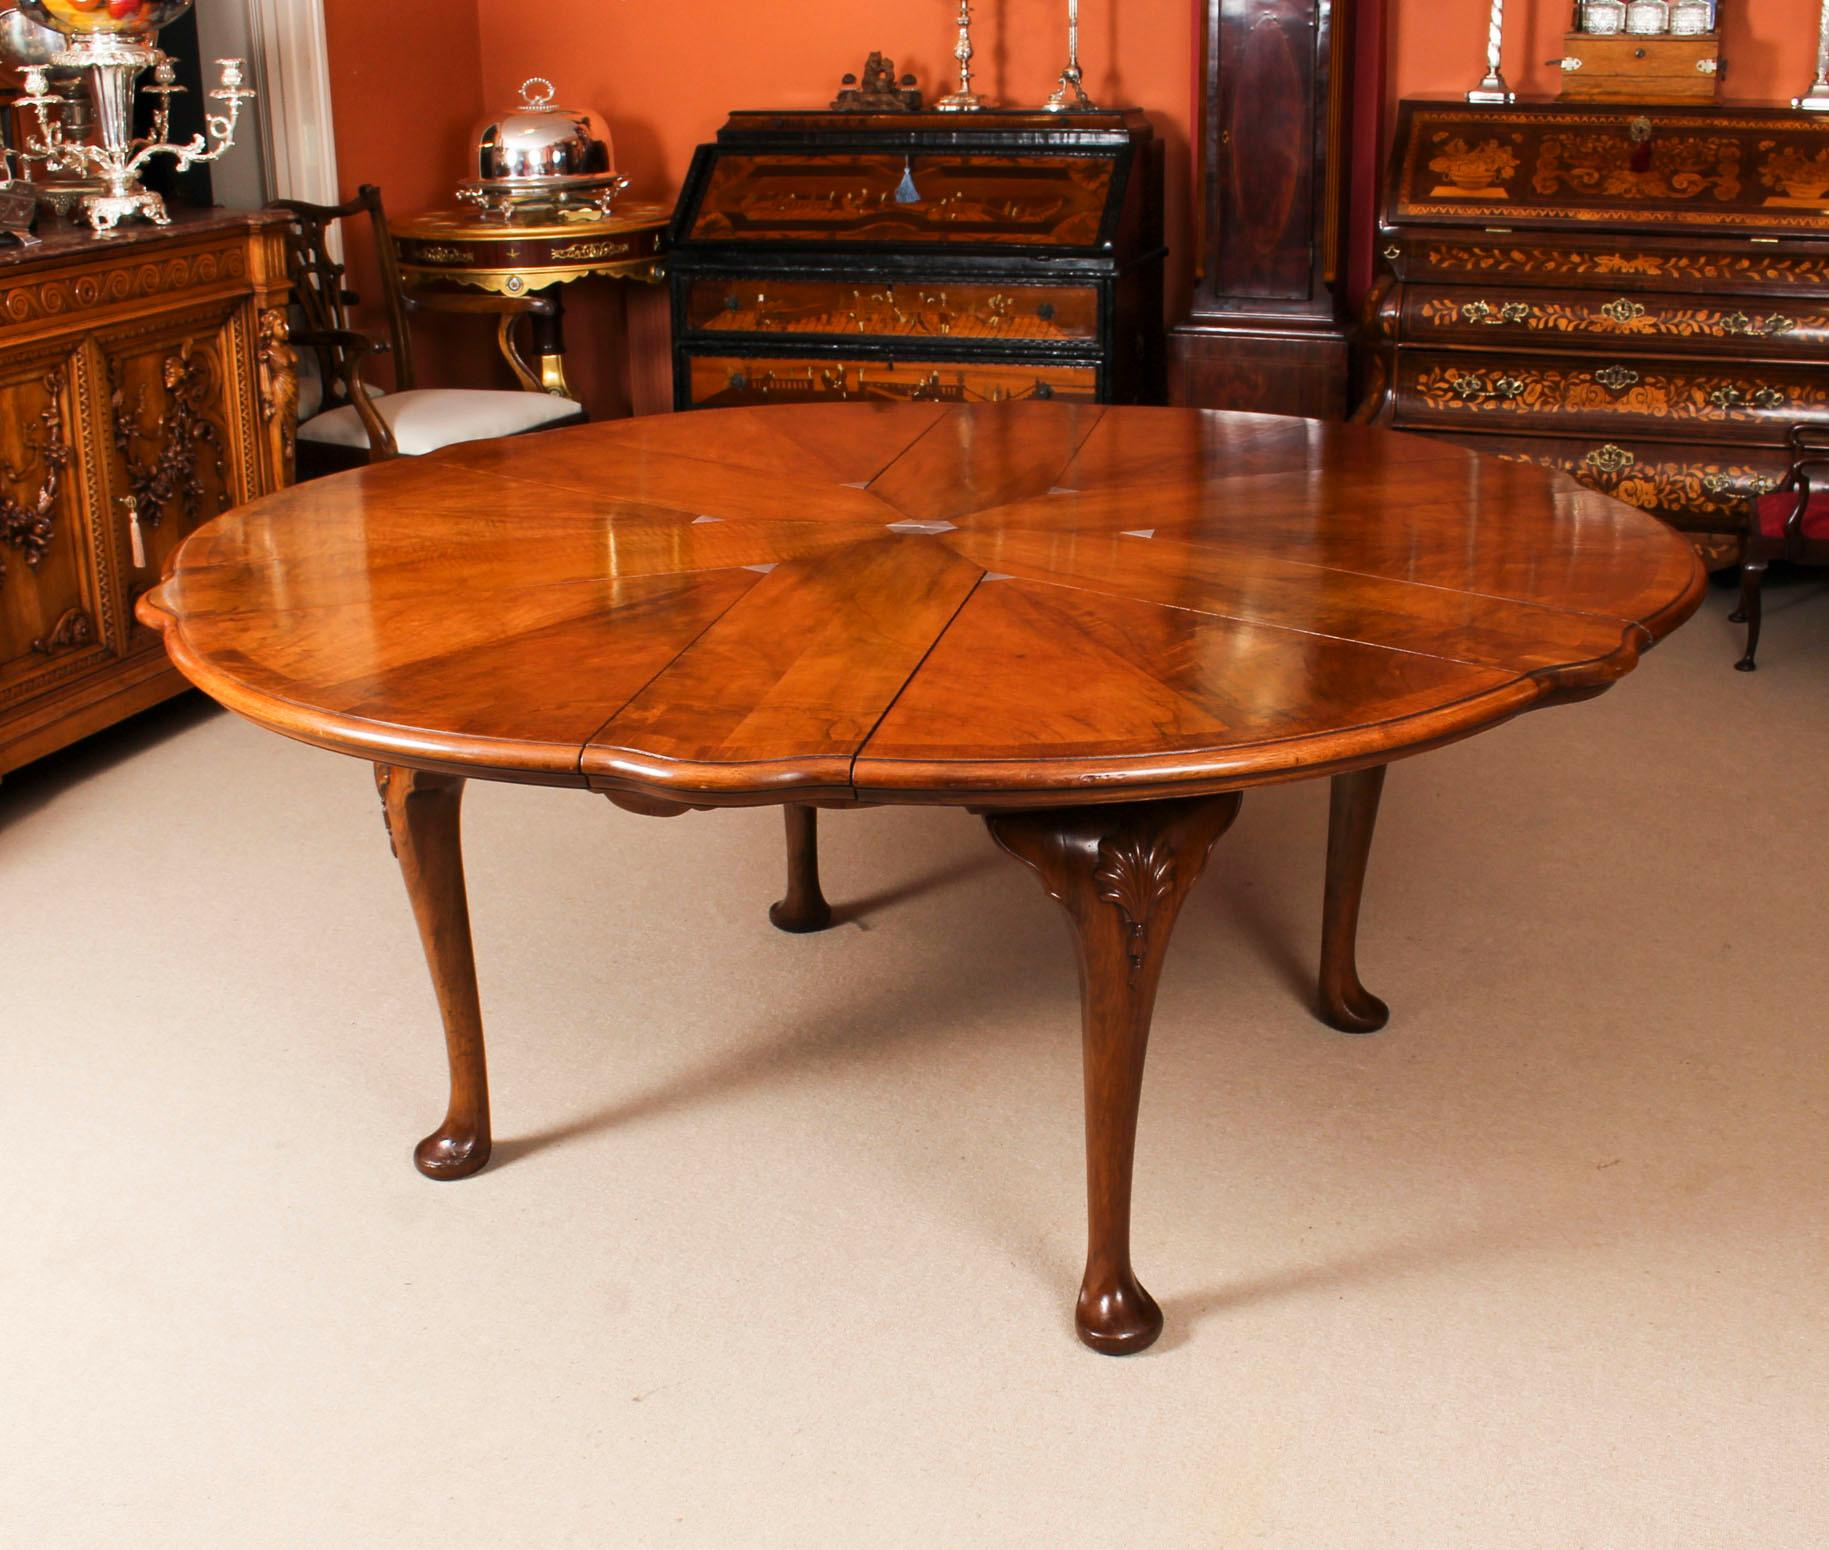 Antique Walnut Jupe Action Dining Table By Gillows, Late 19th Century